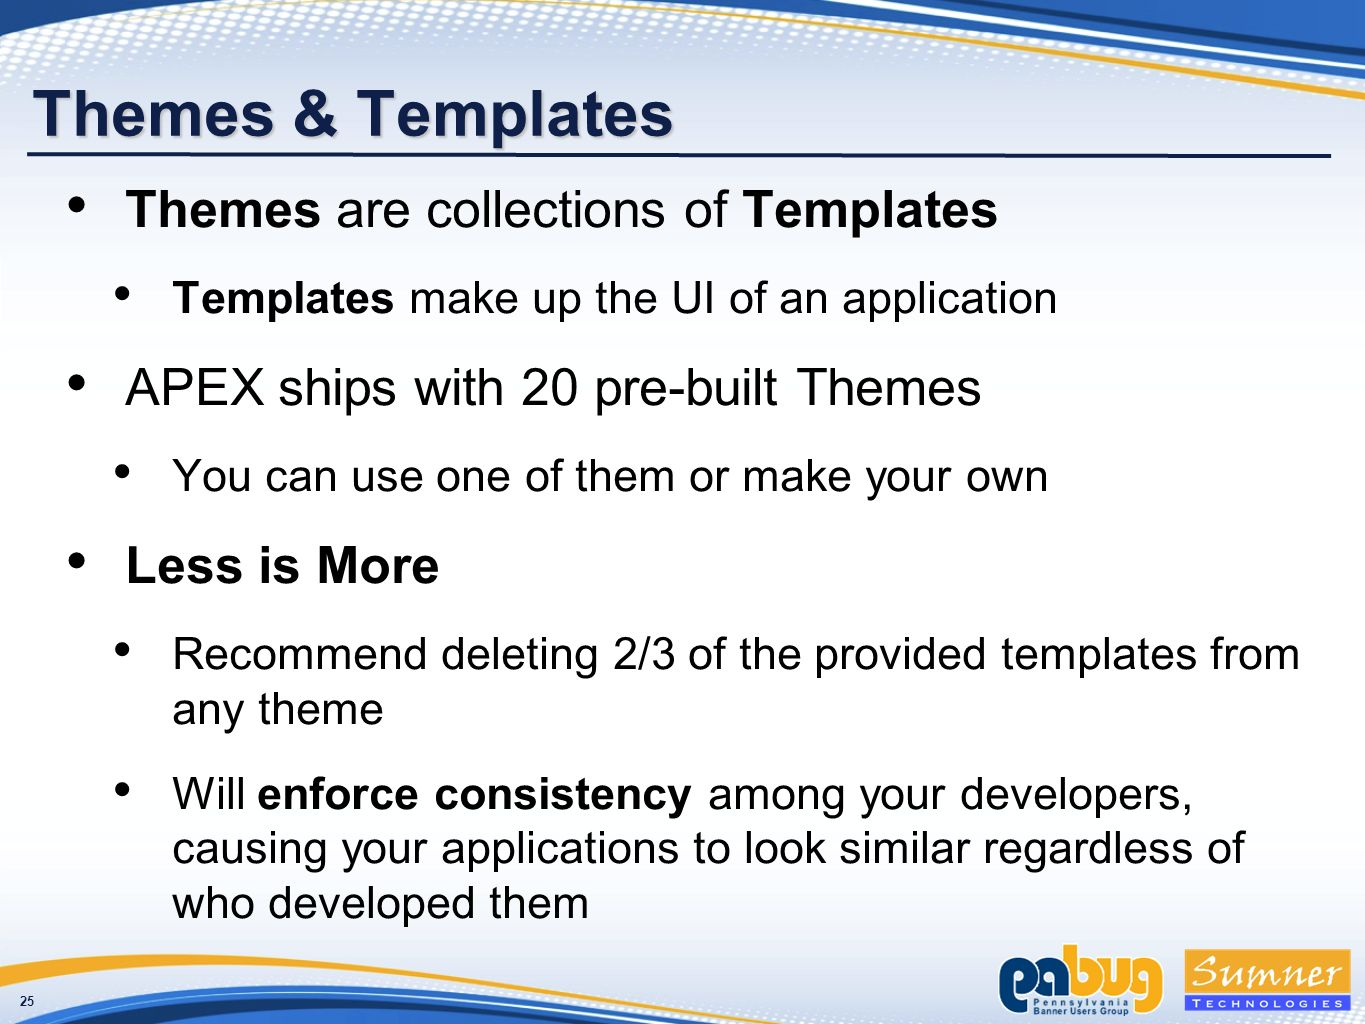 25 Themes & Templates Themes are collections of Templates Templates make up the UI of an application APEX ships with 20 pre-built Themes You can use one of them or make your own Less is More Recommend deleting 2/3 of the provided templates from any theme Will enforce consistency among your developers, causing your applications to look similar regardless of who developed them